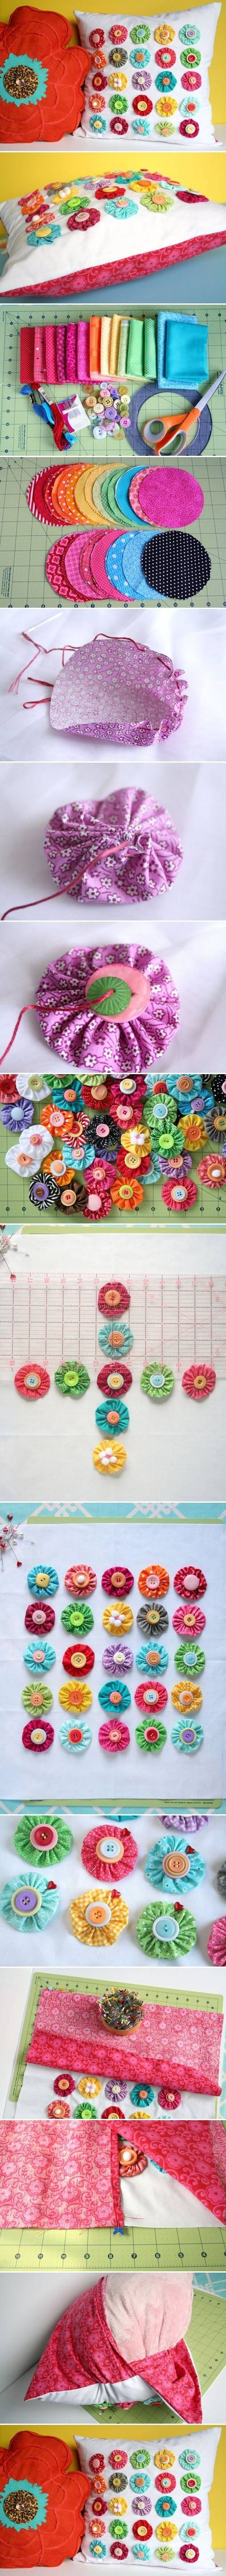 DIY Button Pillow Decorations Pictures, Photos, and Images for Facebook, Tumblr…